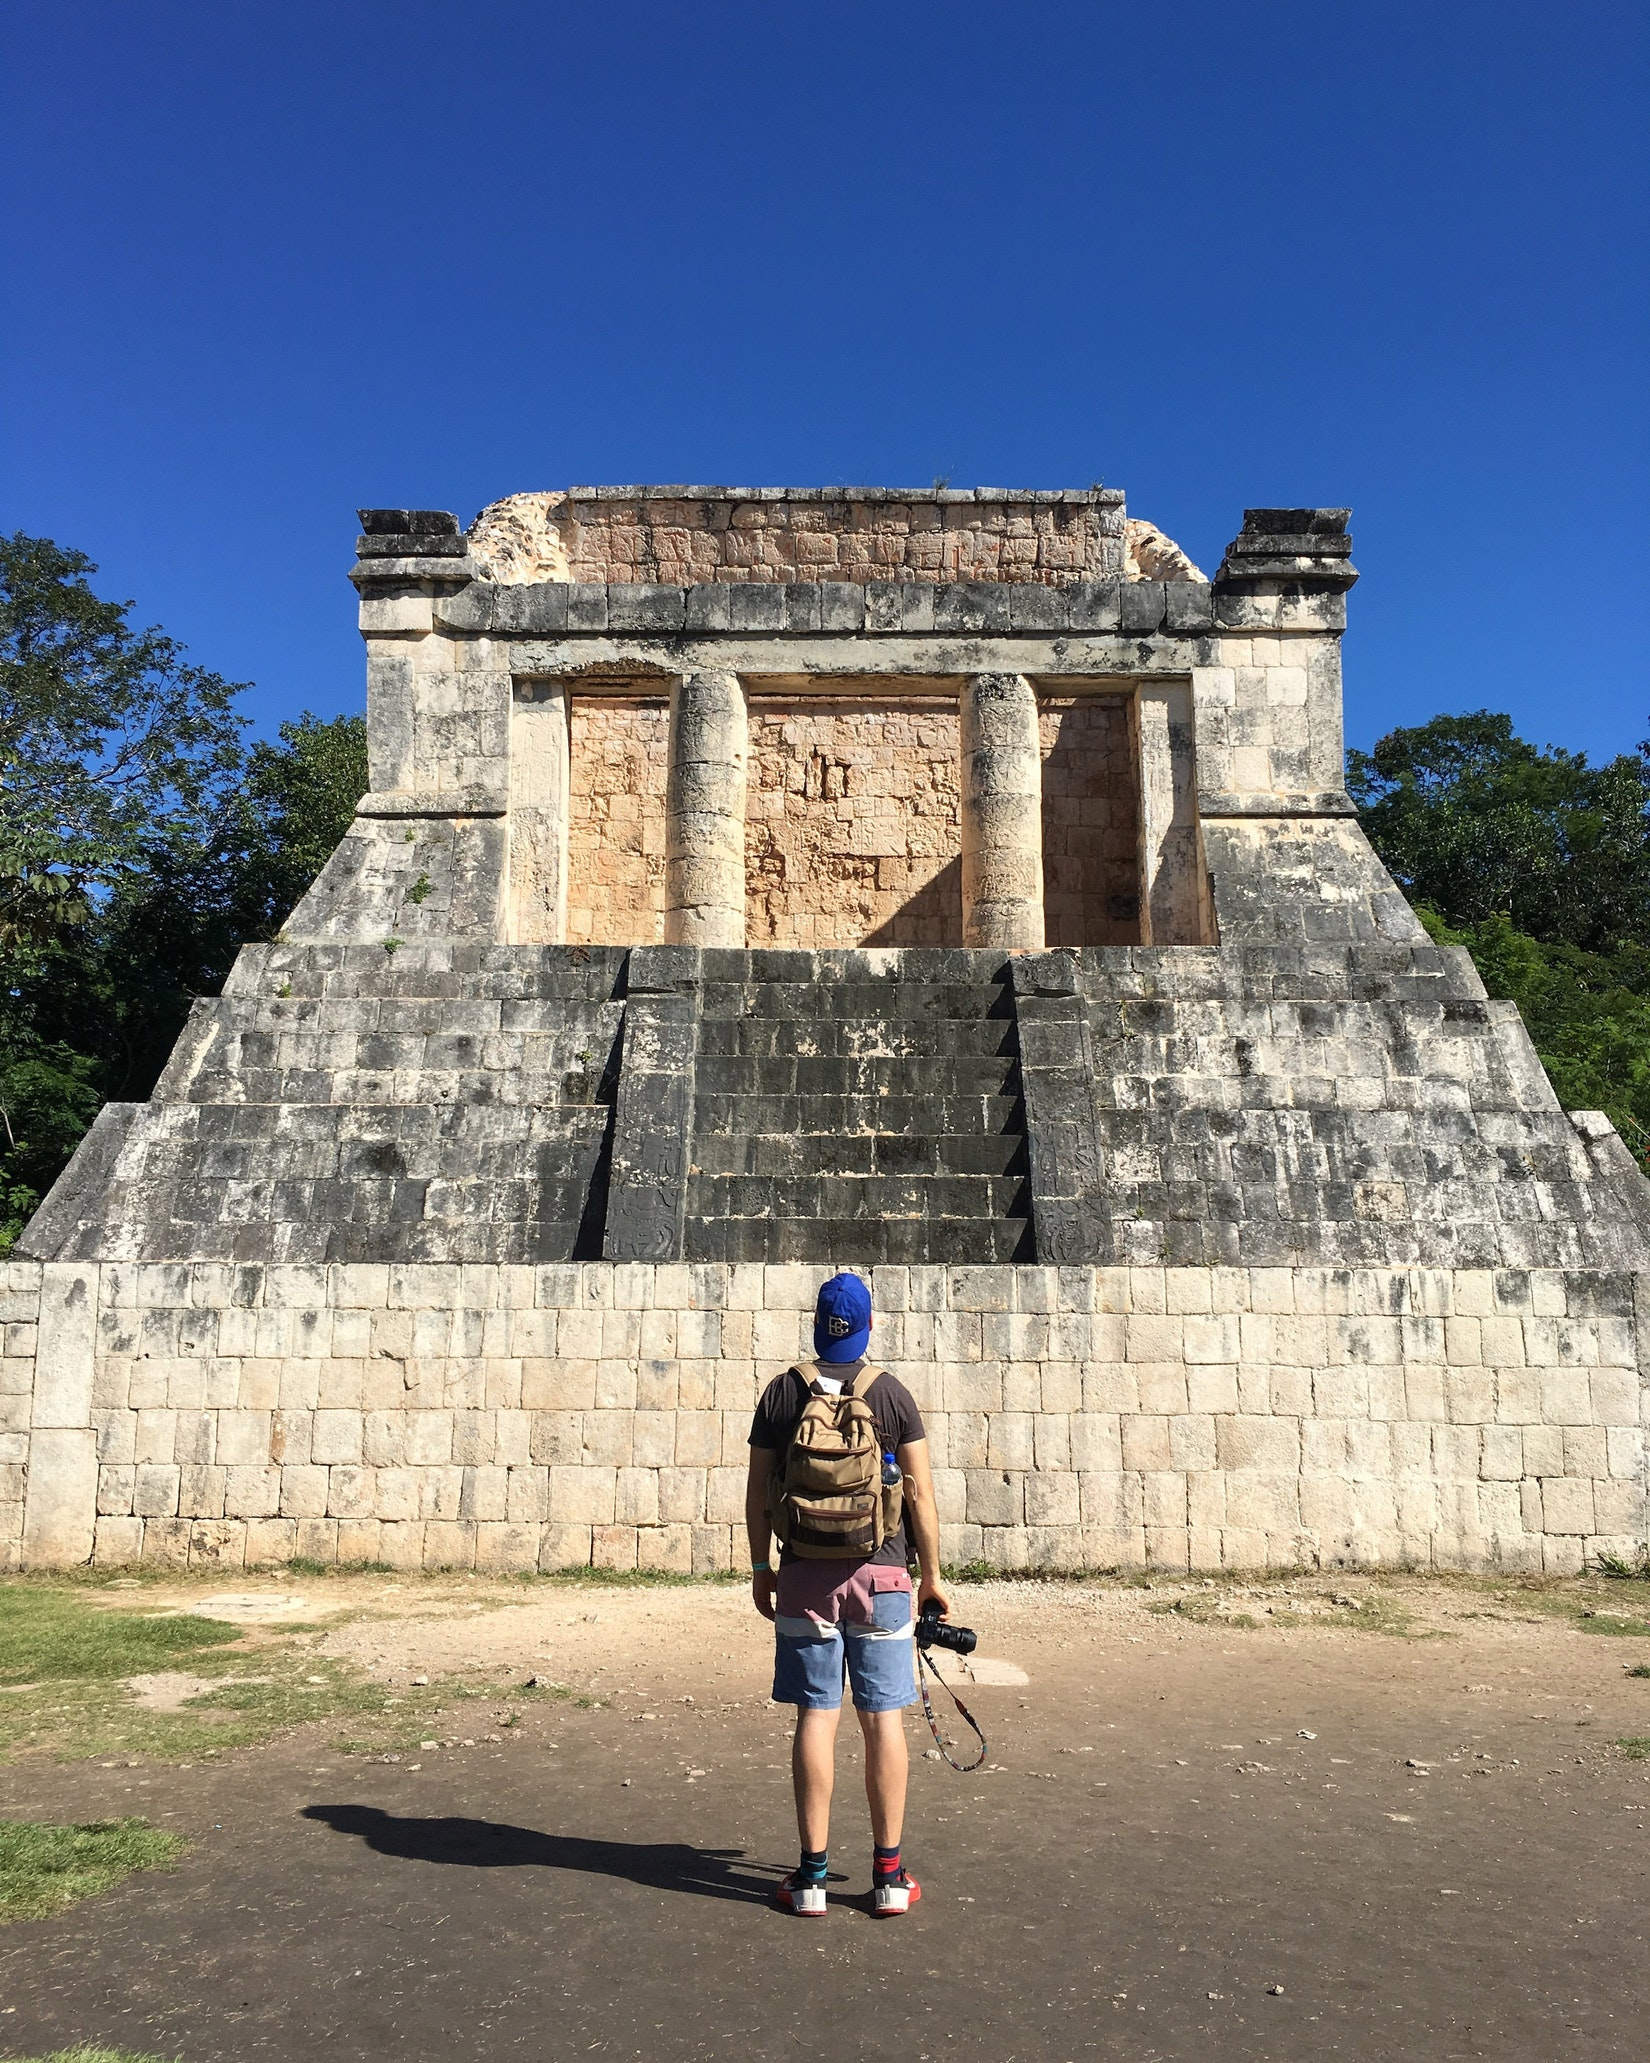 Dan admiring ancient Mayan ruins at Chichen Itza, Mexico